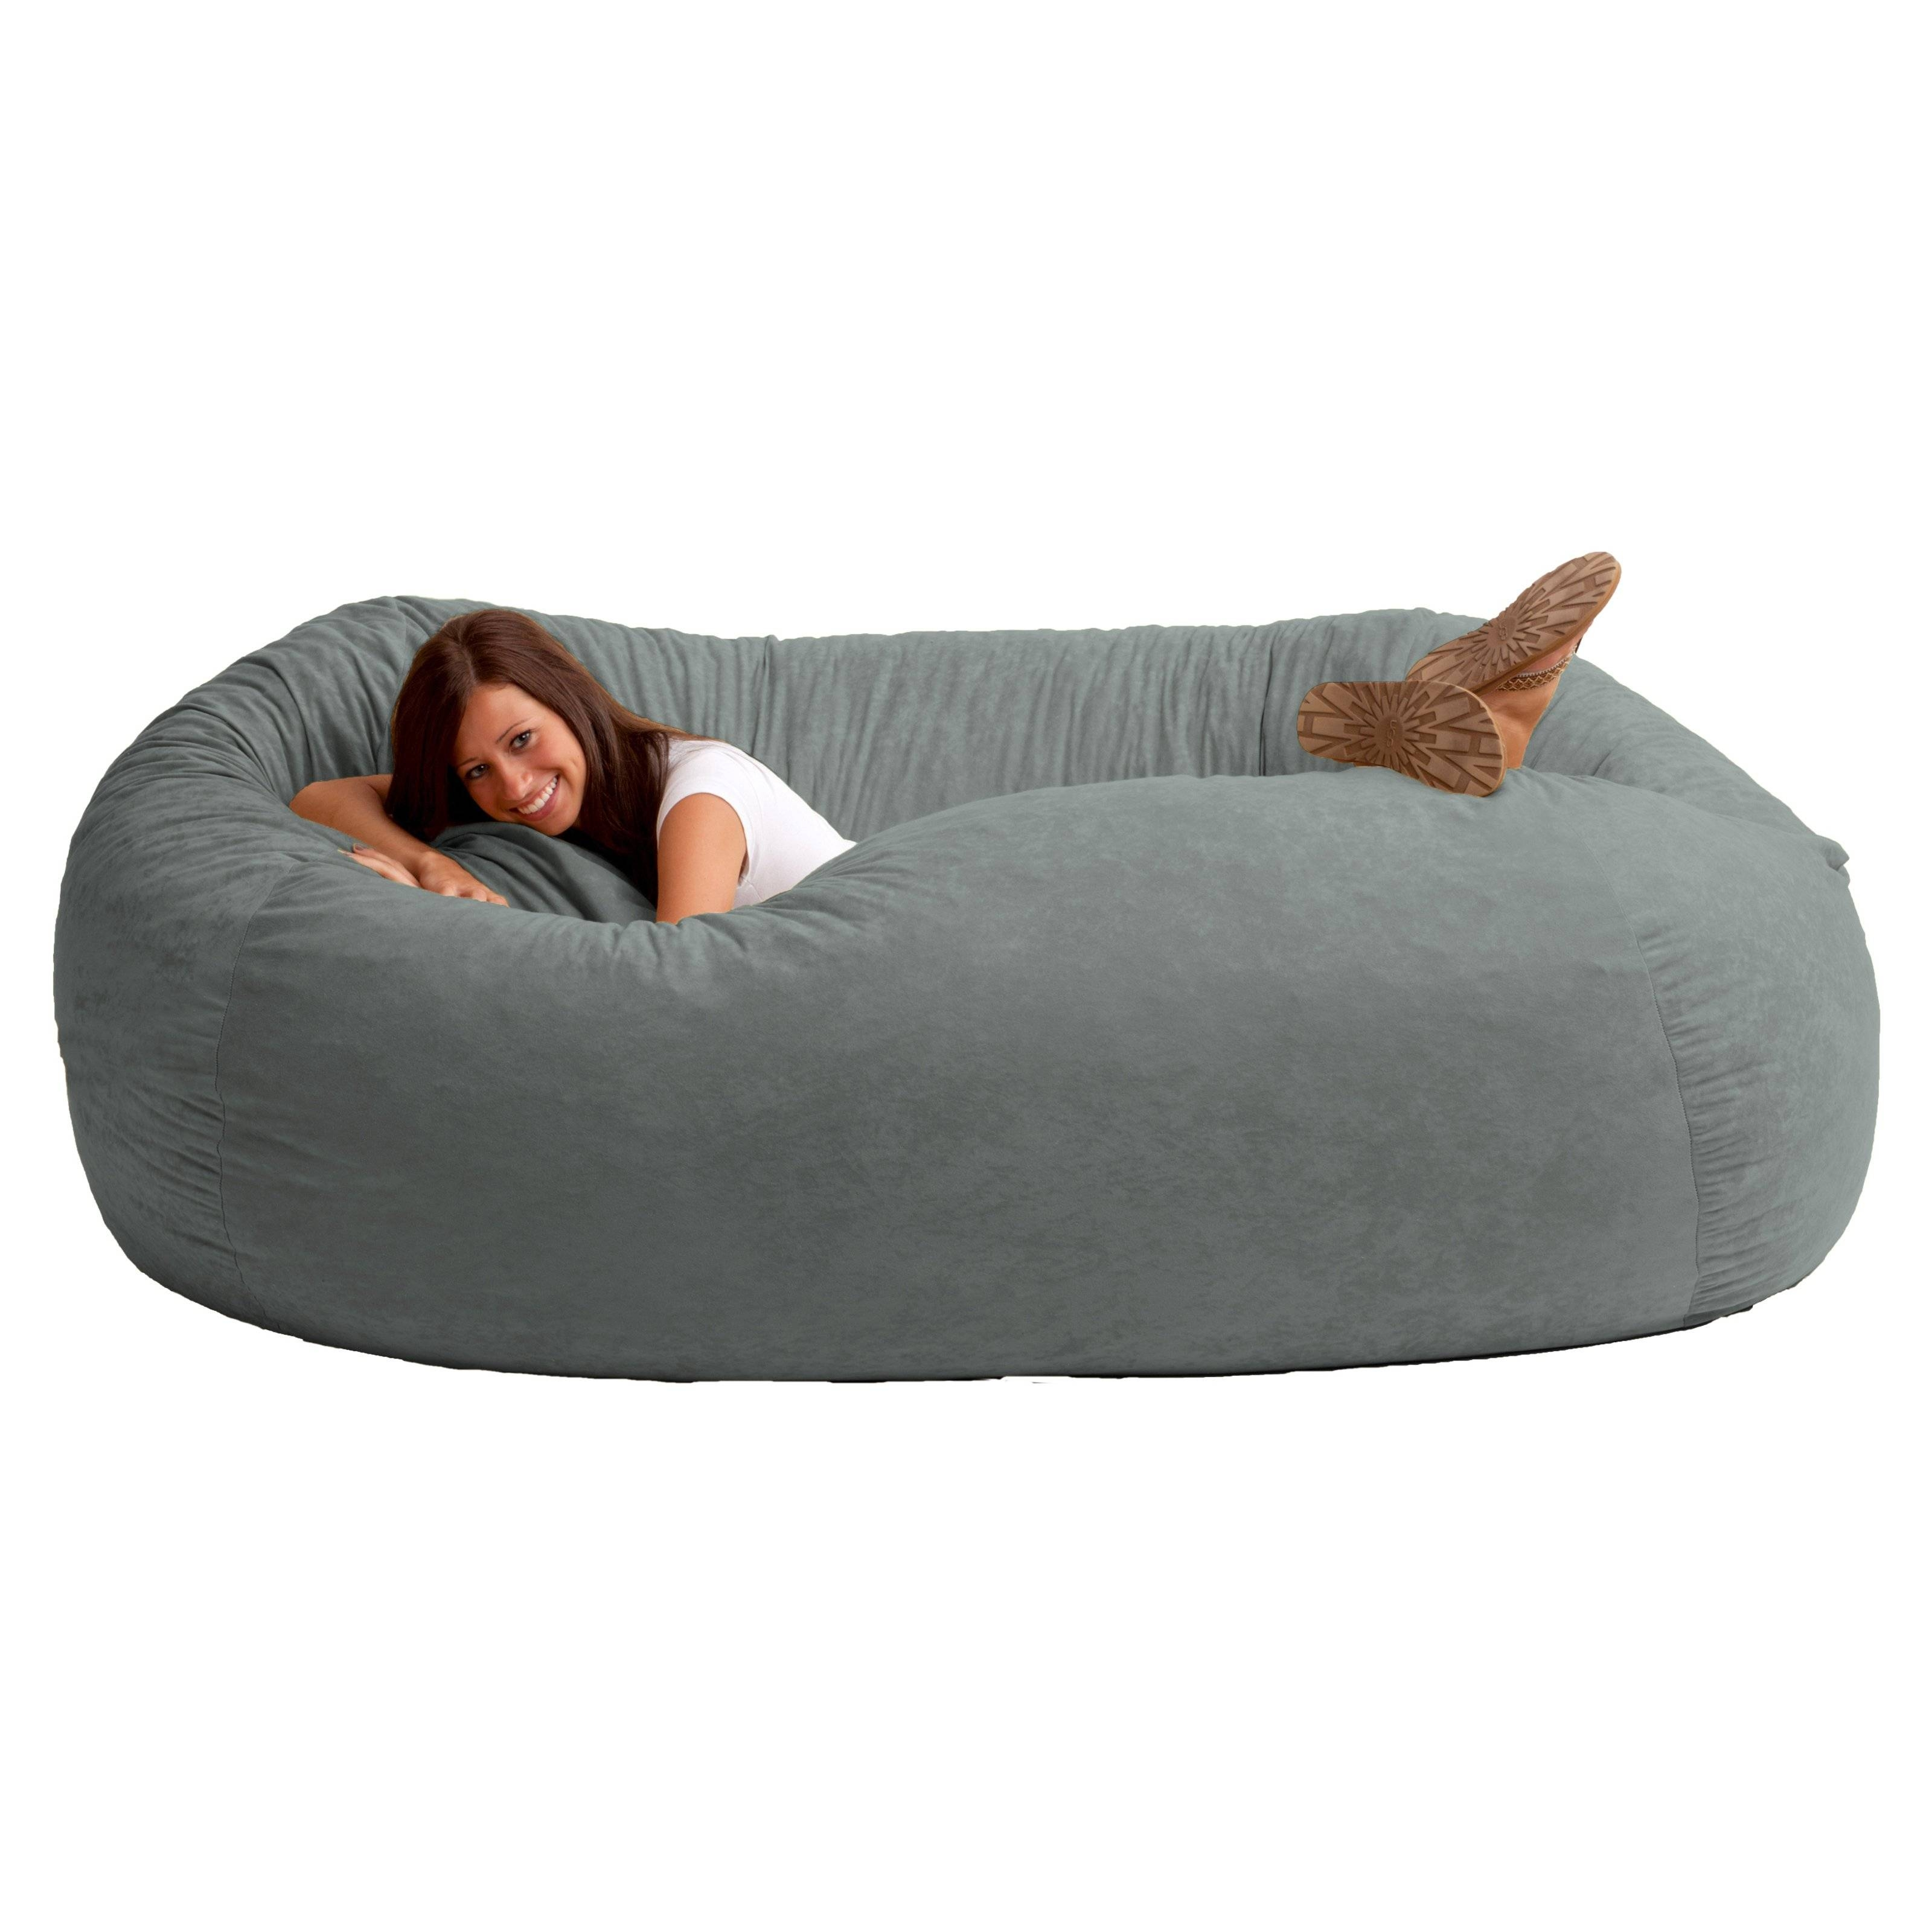 Fuf 7 Ft. Xxl Bean Bag Sofa | Hayneedle with Bean Bag Sofas and Chairs (Image 12 of 15)